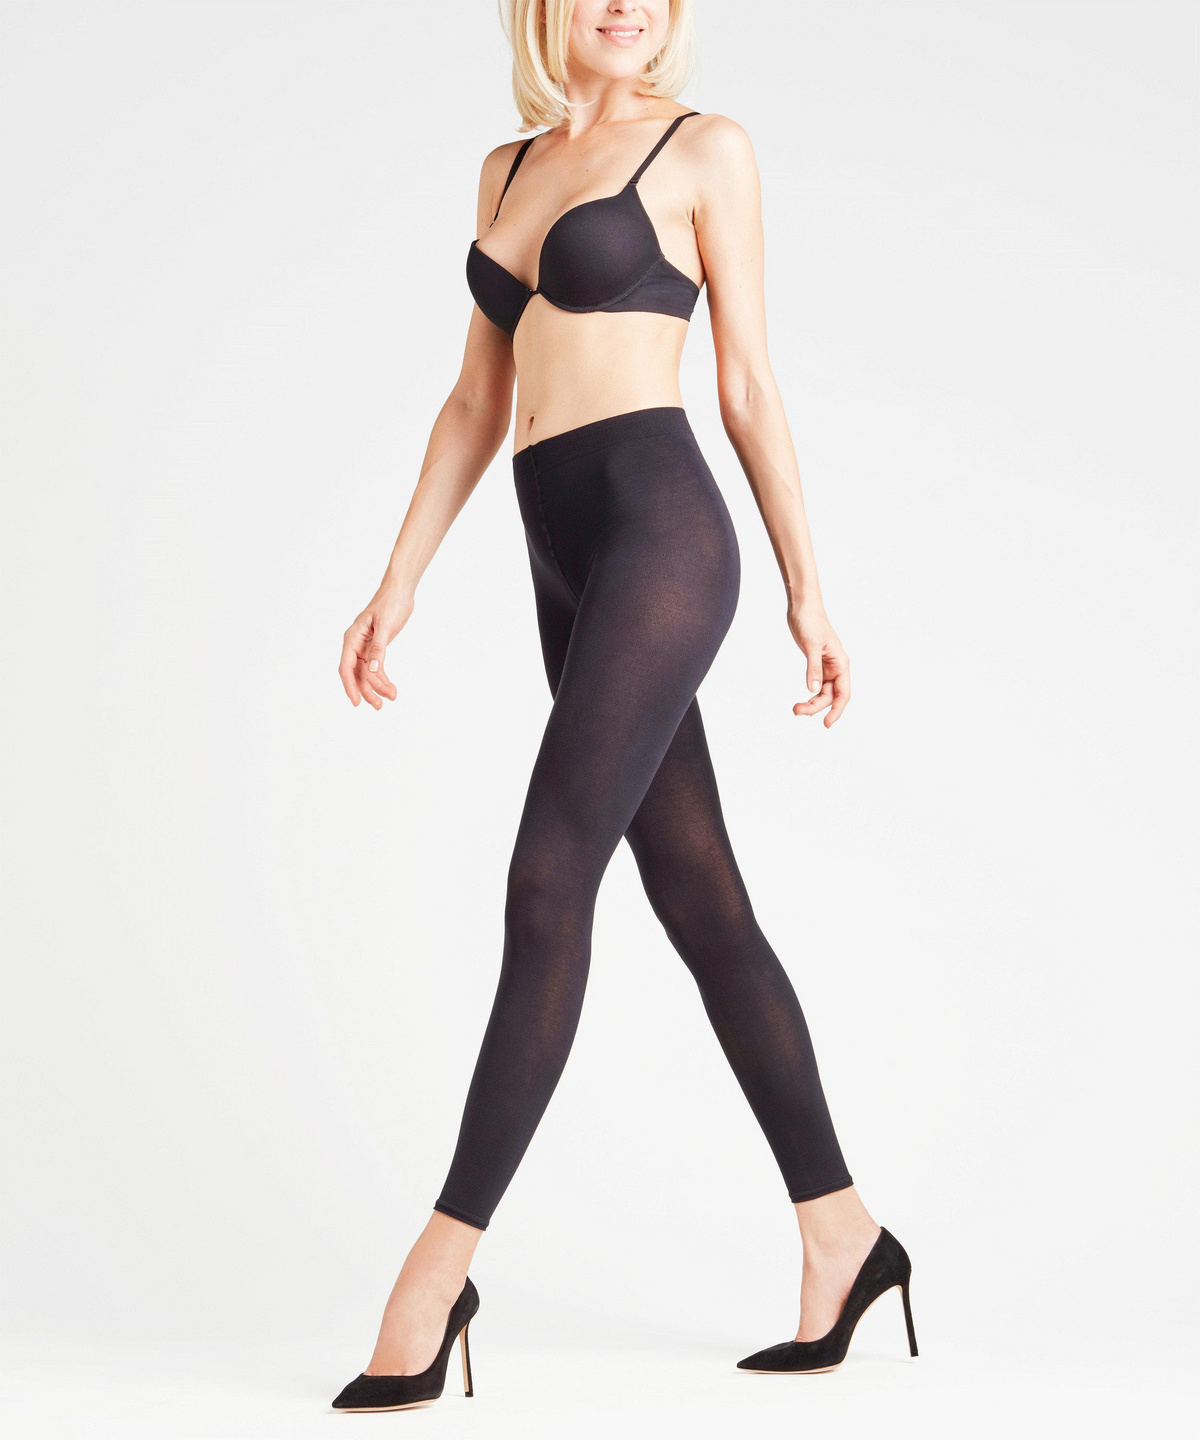 Leggings Cotton Touch Falke Find great prices and the assortment you're looking for. cotton touch women leggings